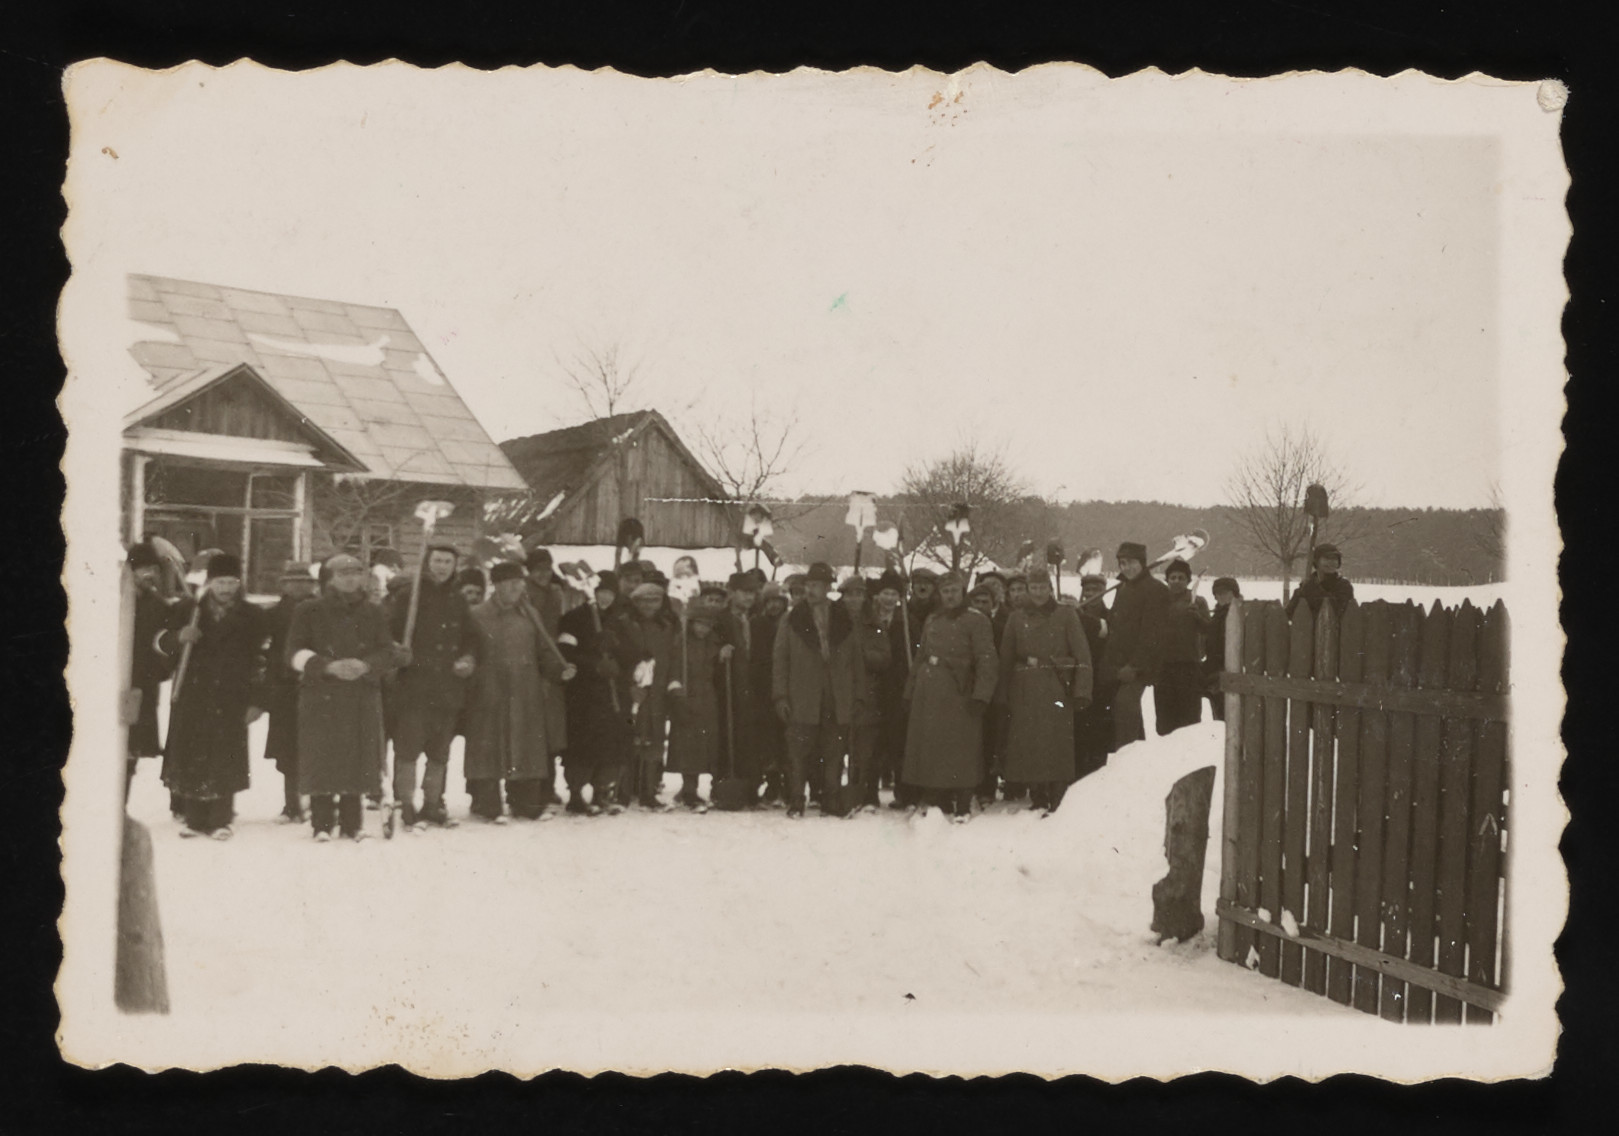 A group of Jewish forced laborers pose with shovels at the entrance to the Kolbuszowa ghetto.